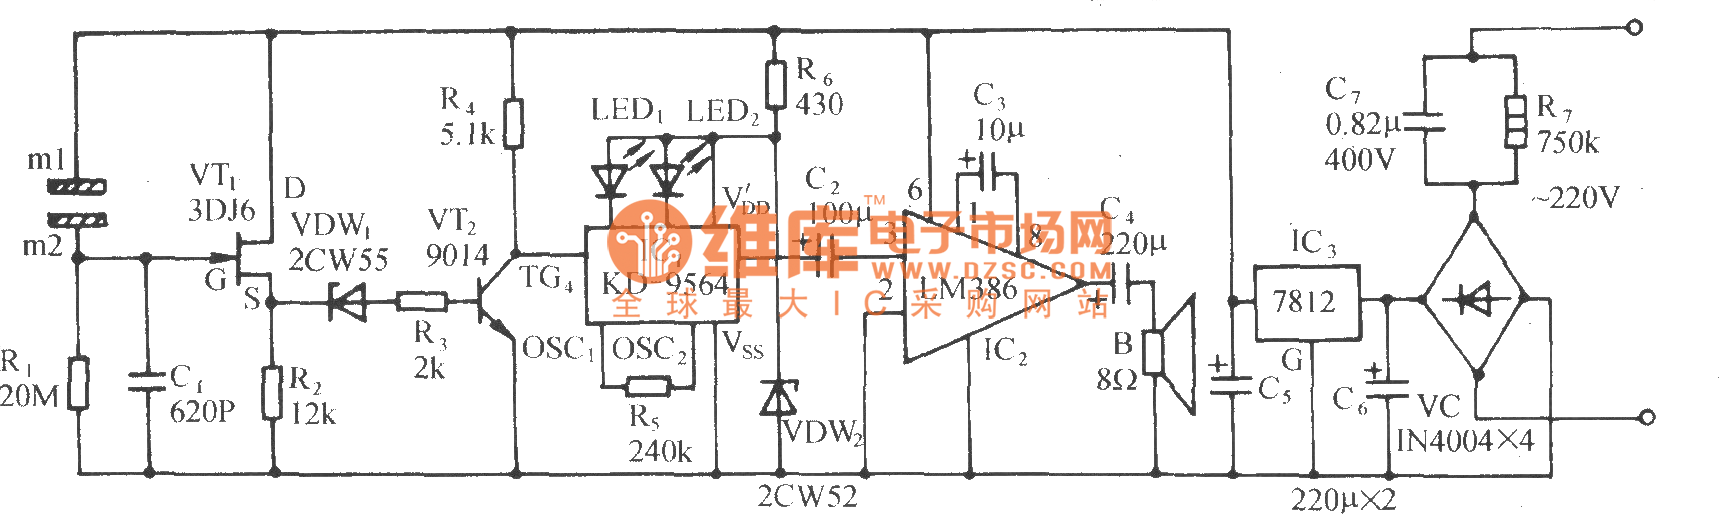 hight resolution of the fire alarm circuit with the metal plate as the fog sensor